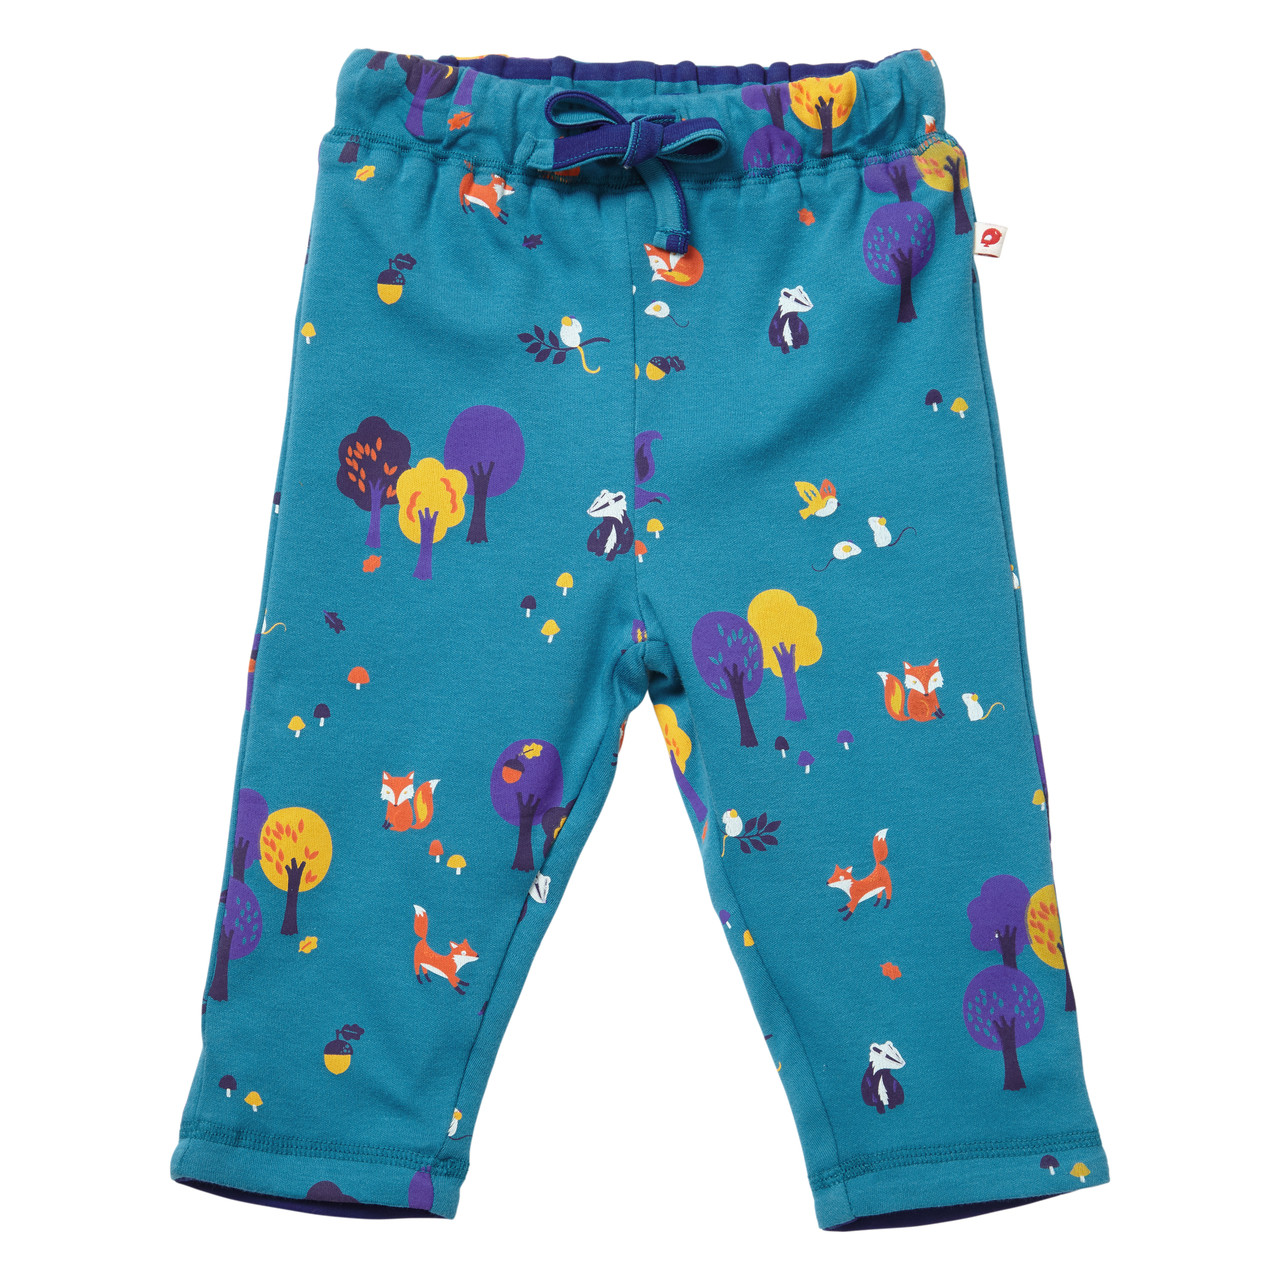 Piccalilly Organic Cotton Unisex Teal Blue Woodland Print Reversible Trousers